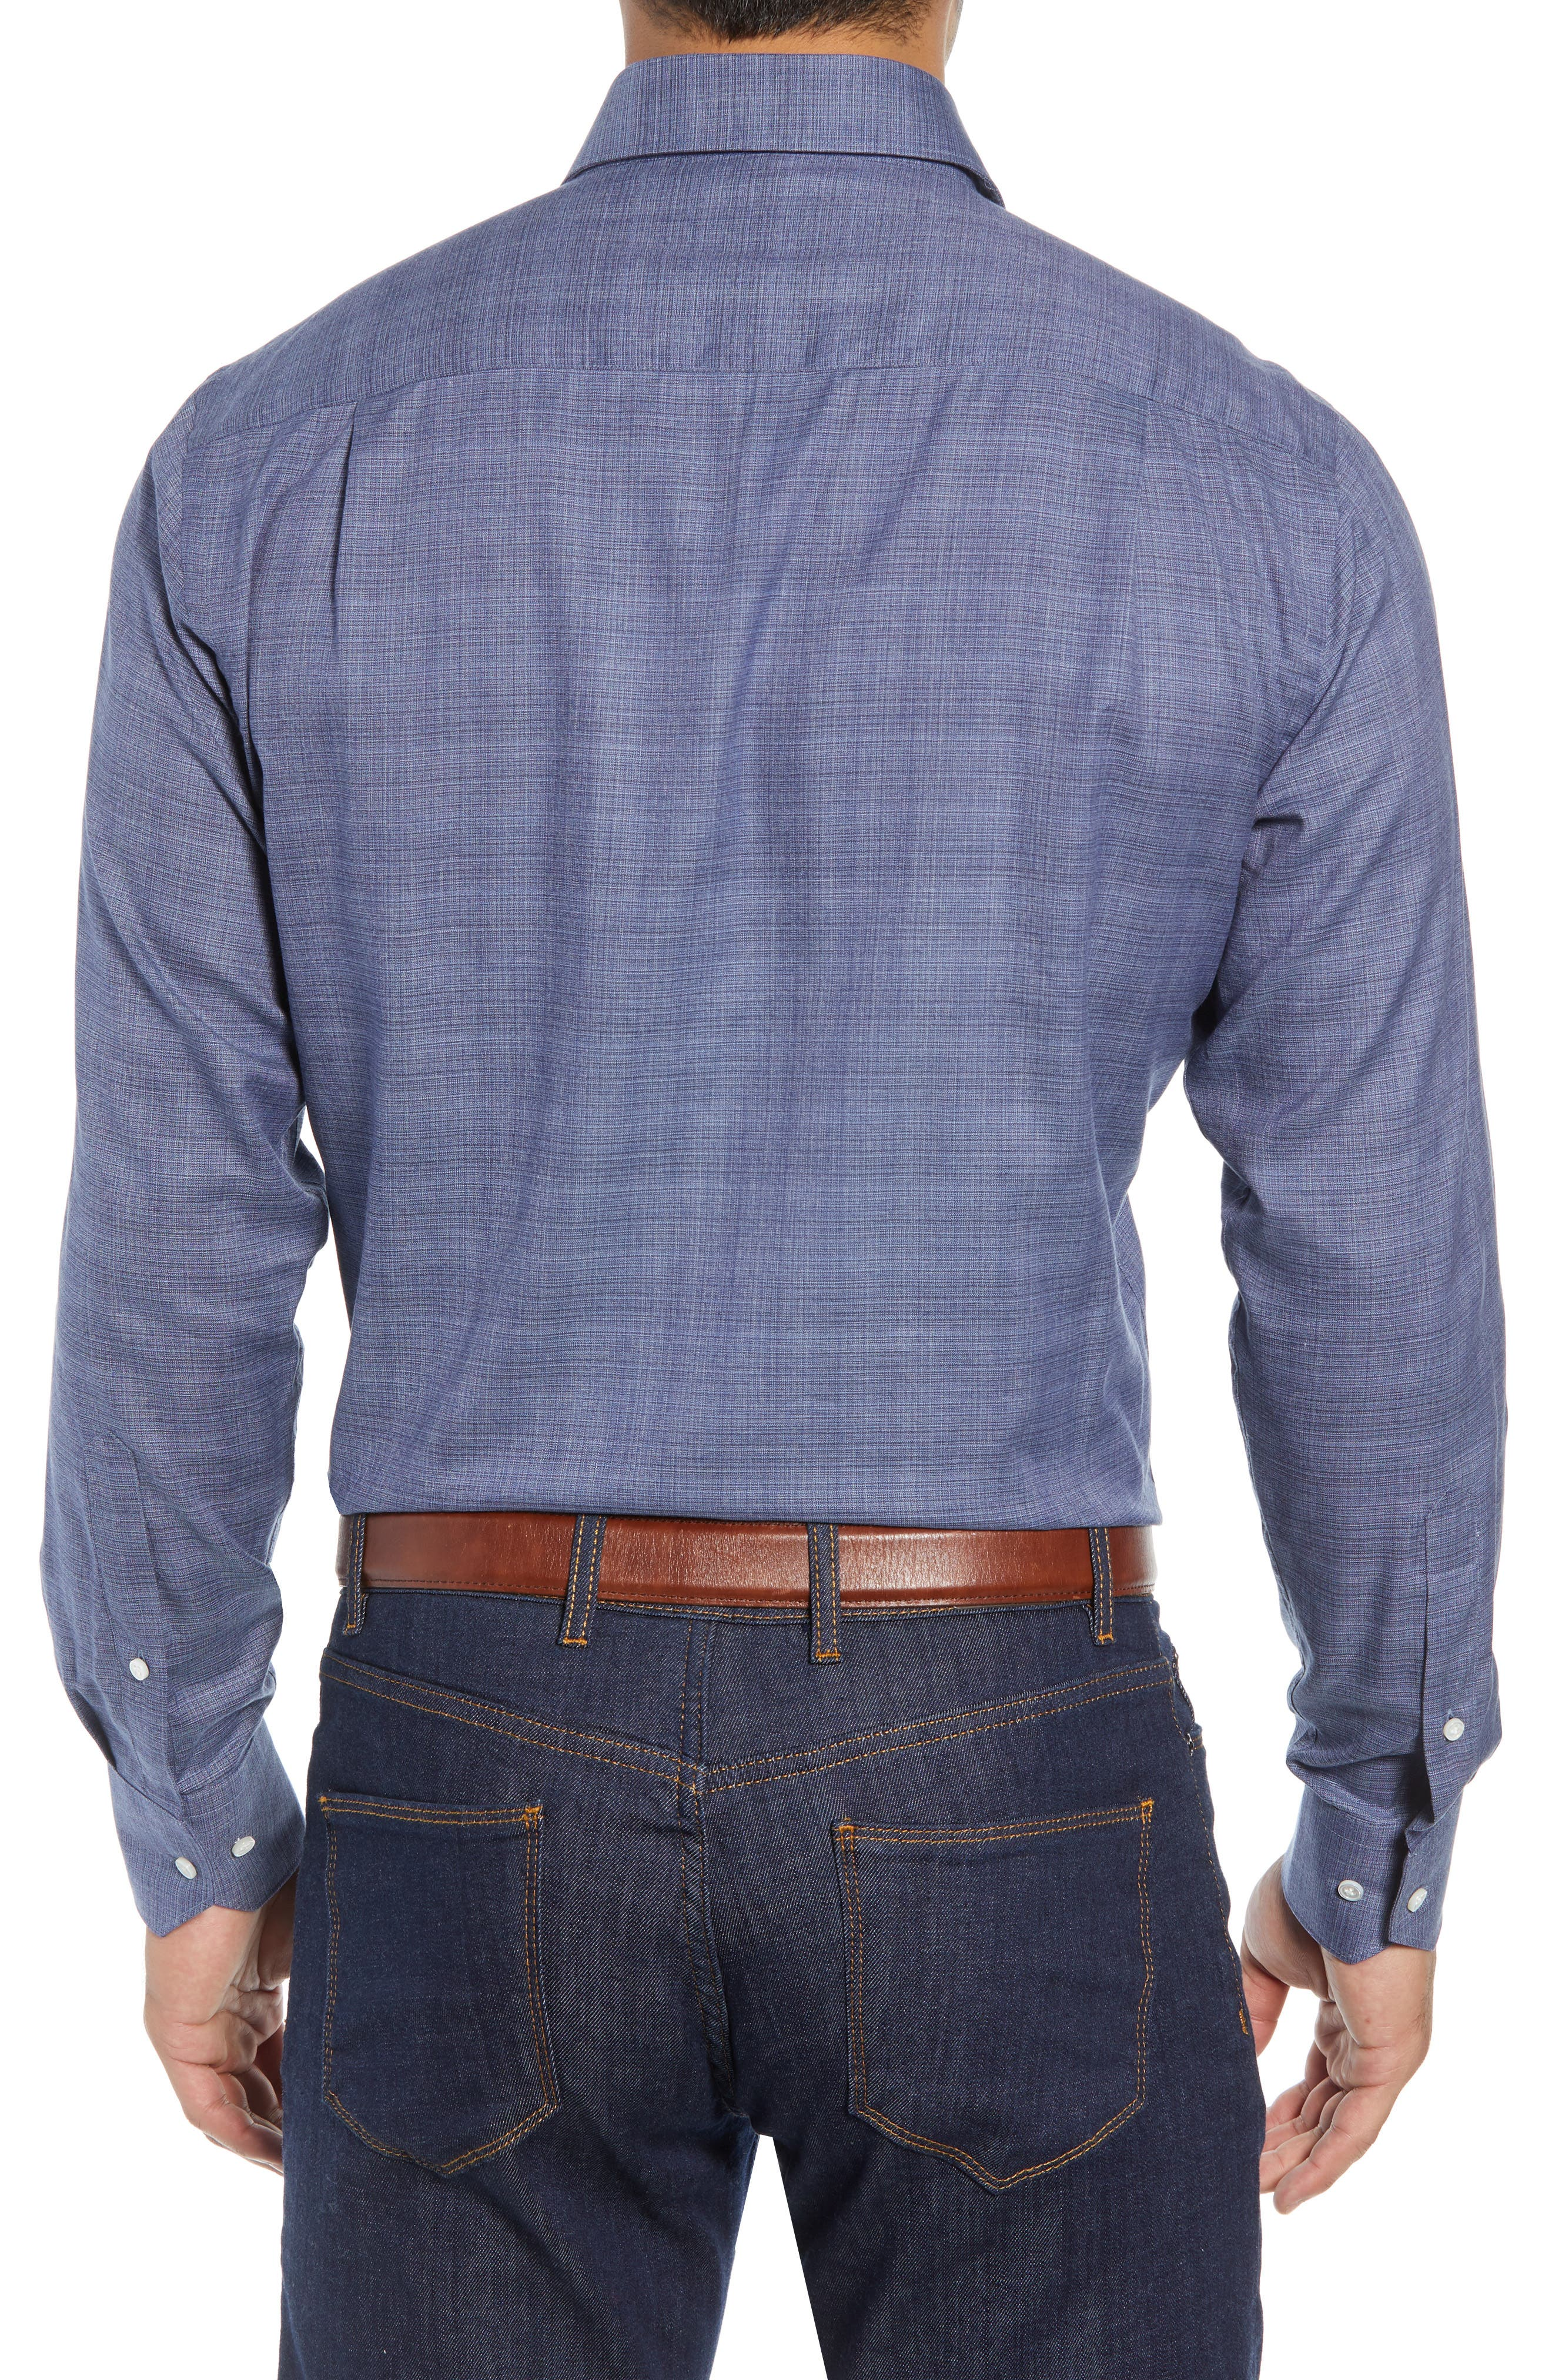 Starlight Regular Fit Chambray Sport Shirt,                             Alternate thumbnail 3, color,                             417